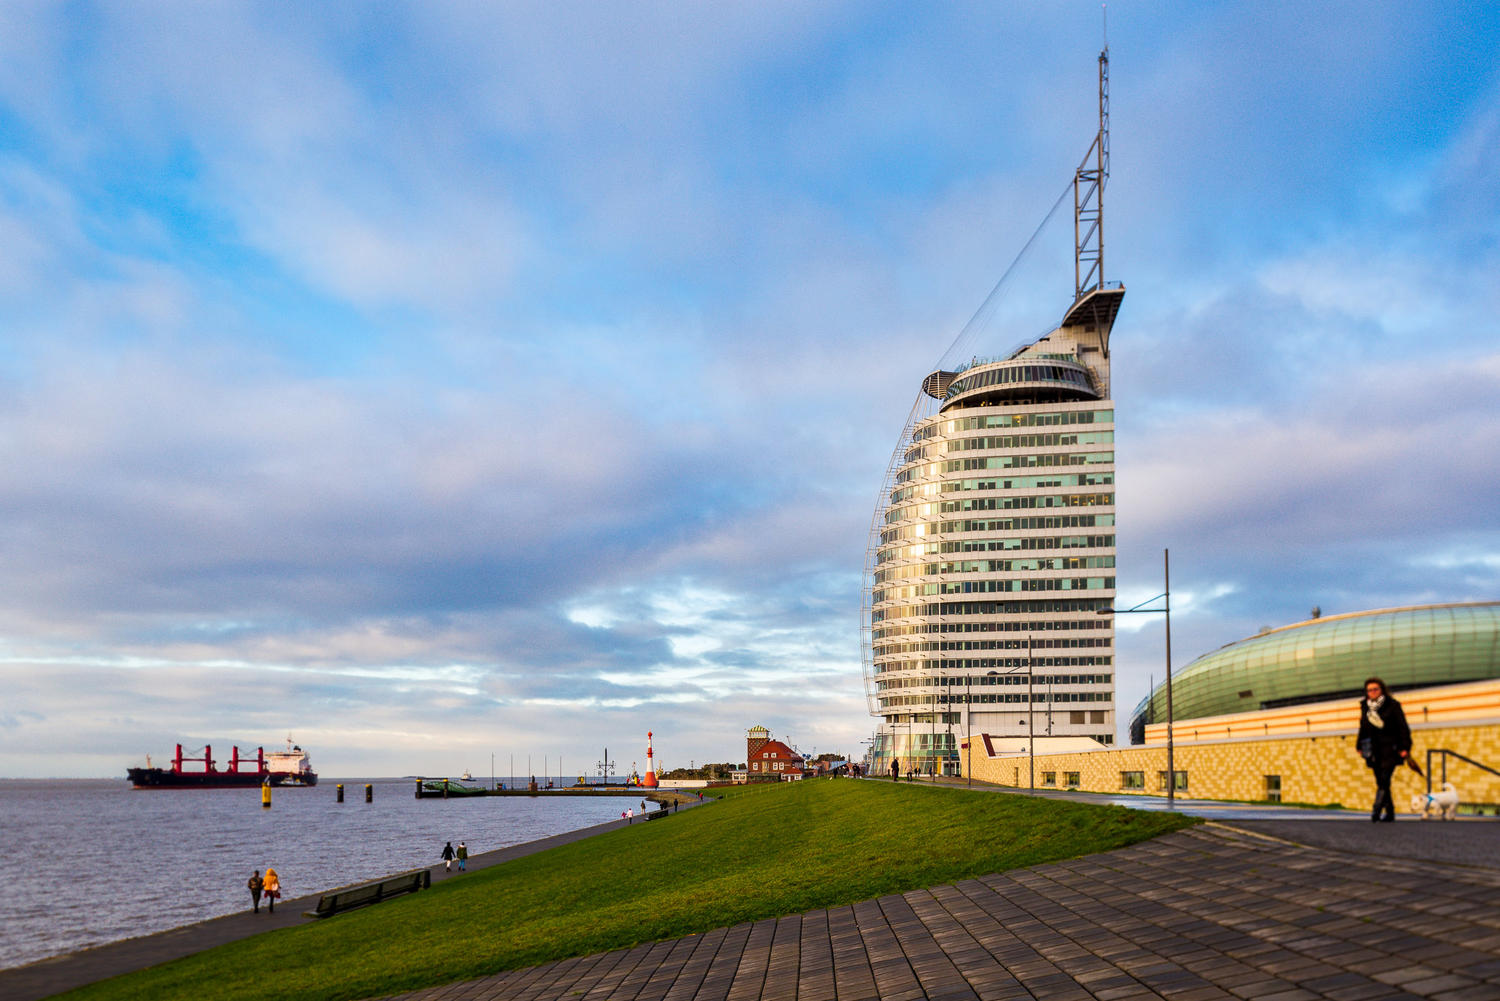 Sail City Hotel, Bremerhaven, Germany